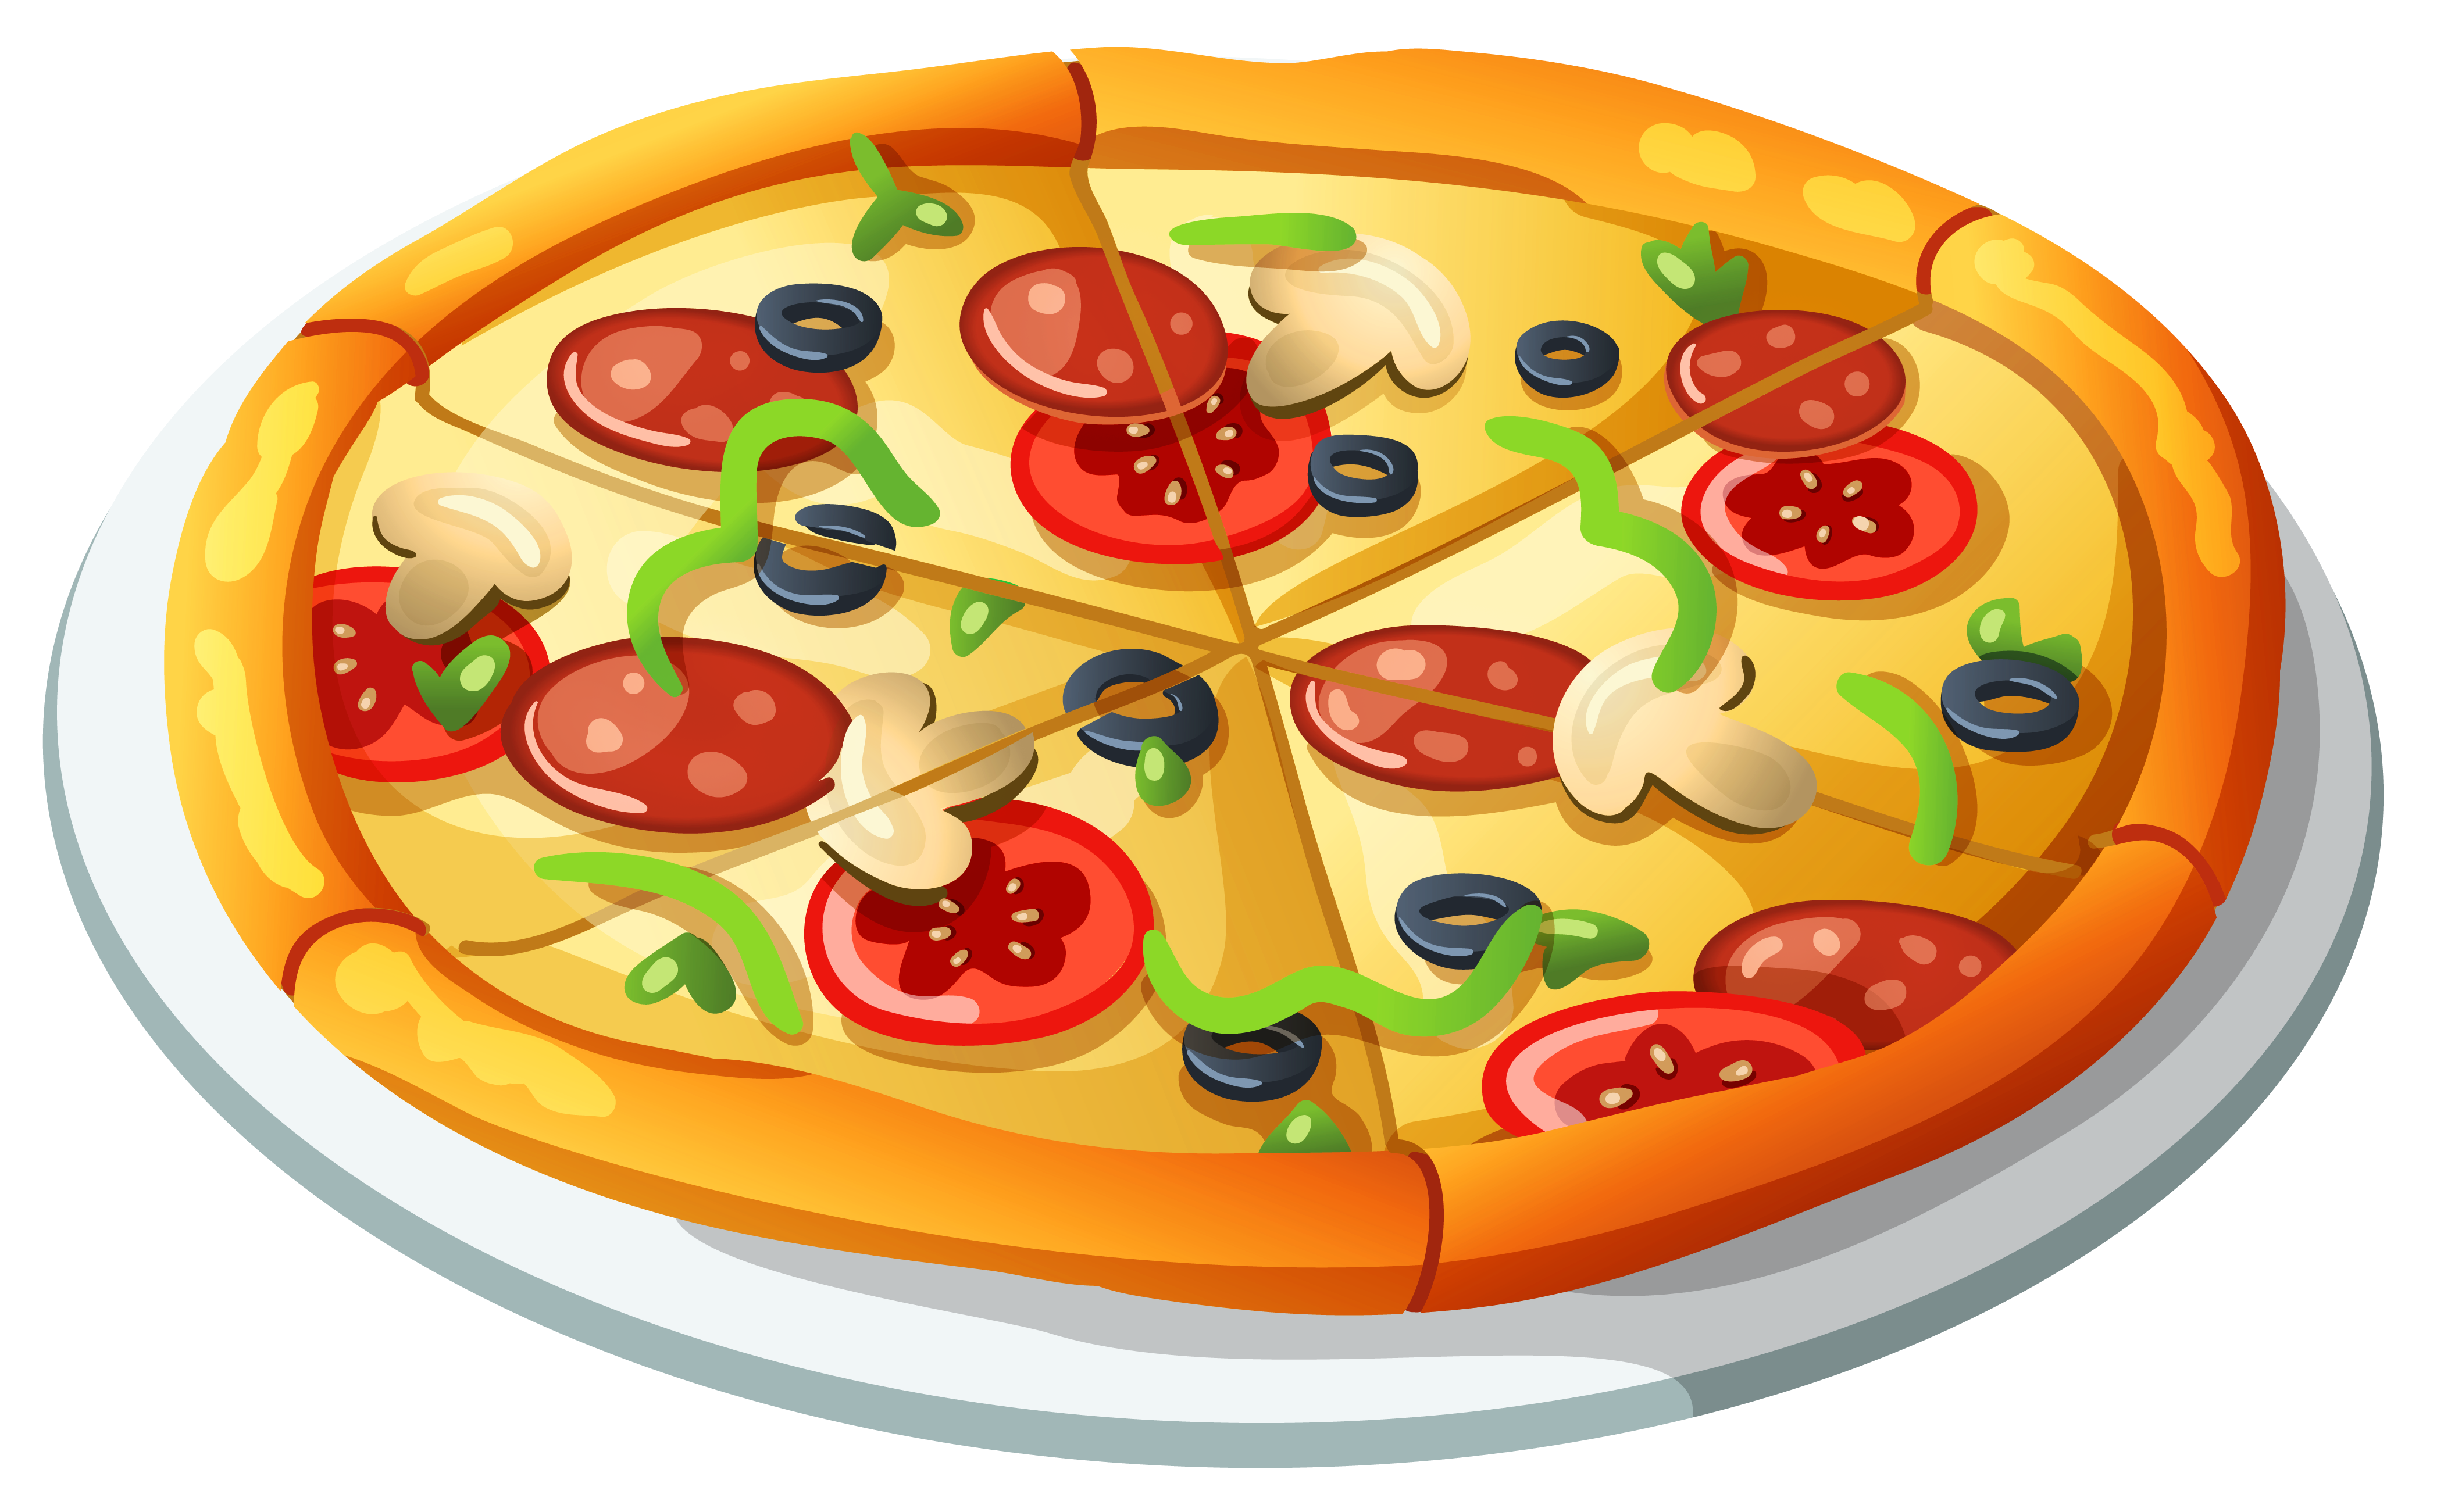 Pizza Free To Use Cliparts 2-Pizza free to use cliparts 2-14